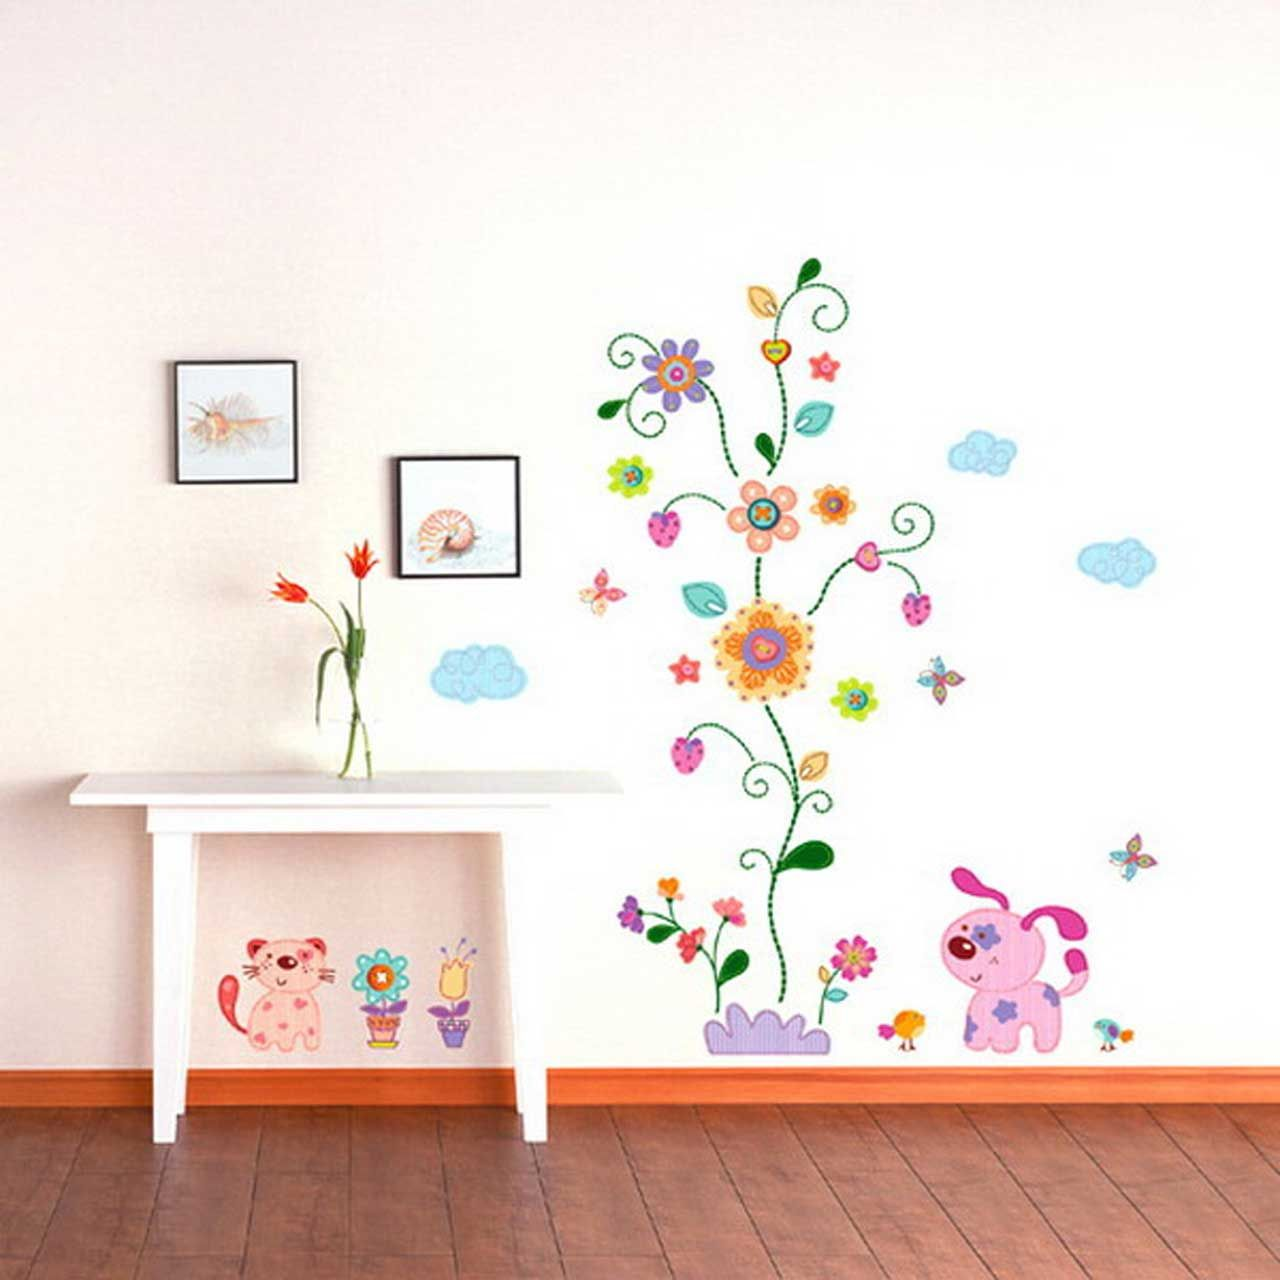 beautiful kids room decorating design ideas with creative removable flower wall art kids room design also simple white table for playroom kids room